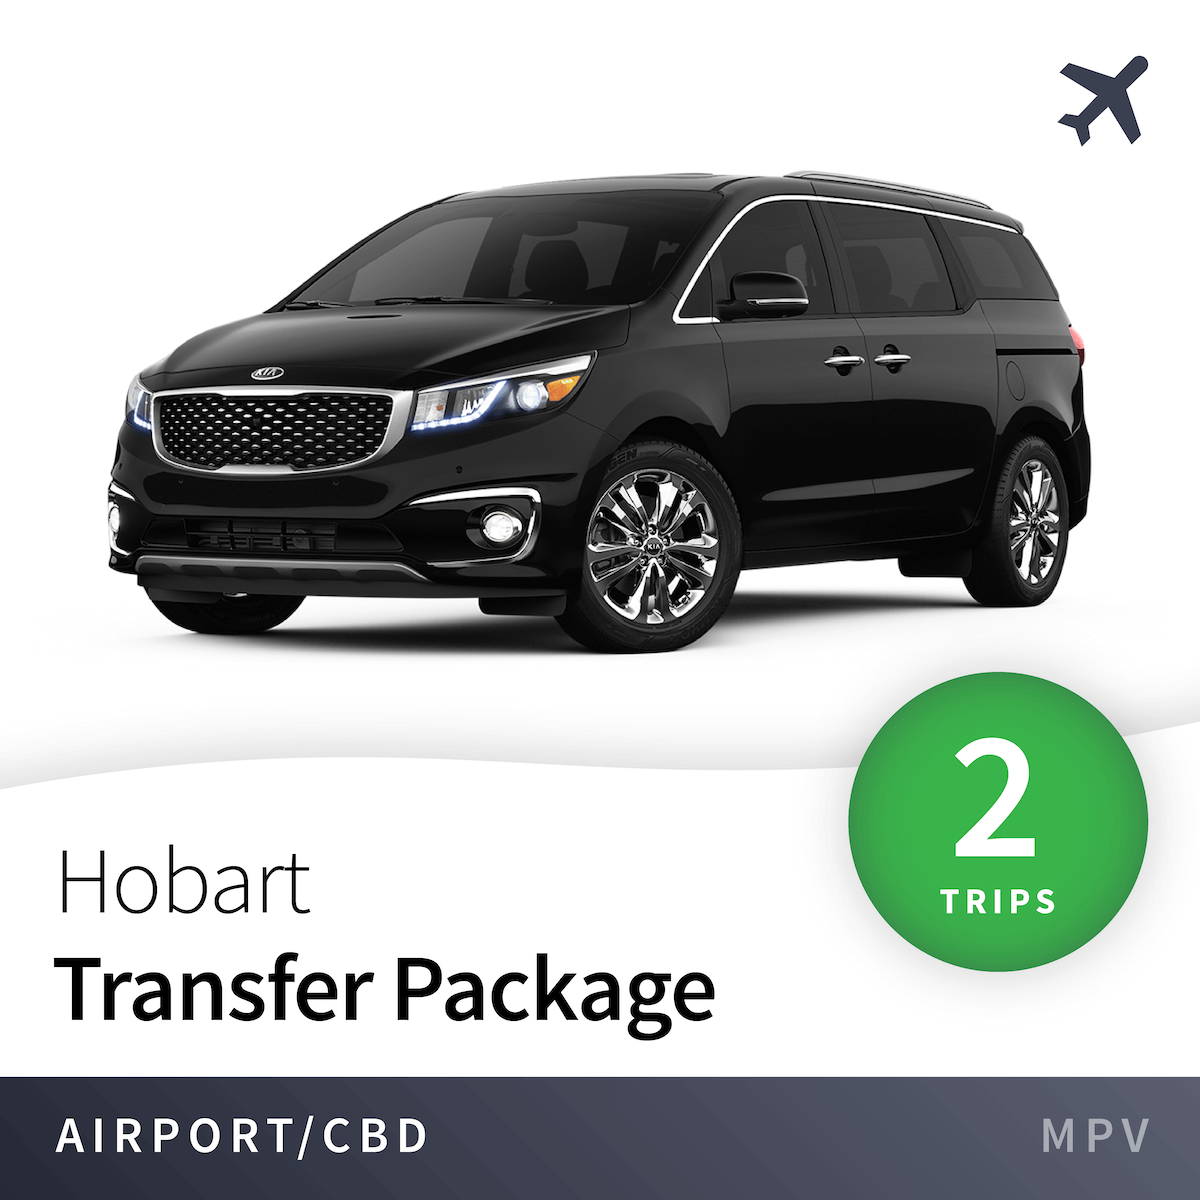 Hobart Airport Transfer Package - MPV (2 Trips) 22